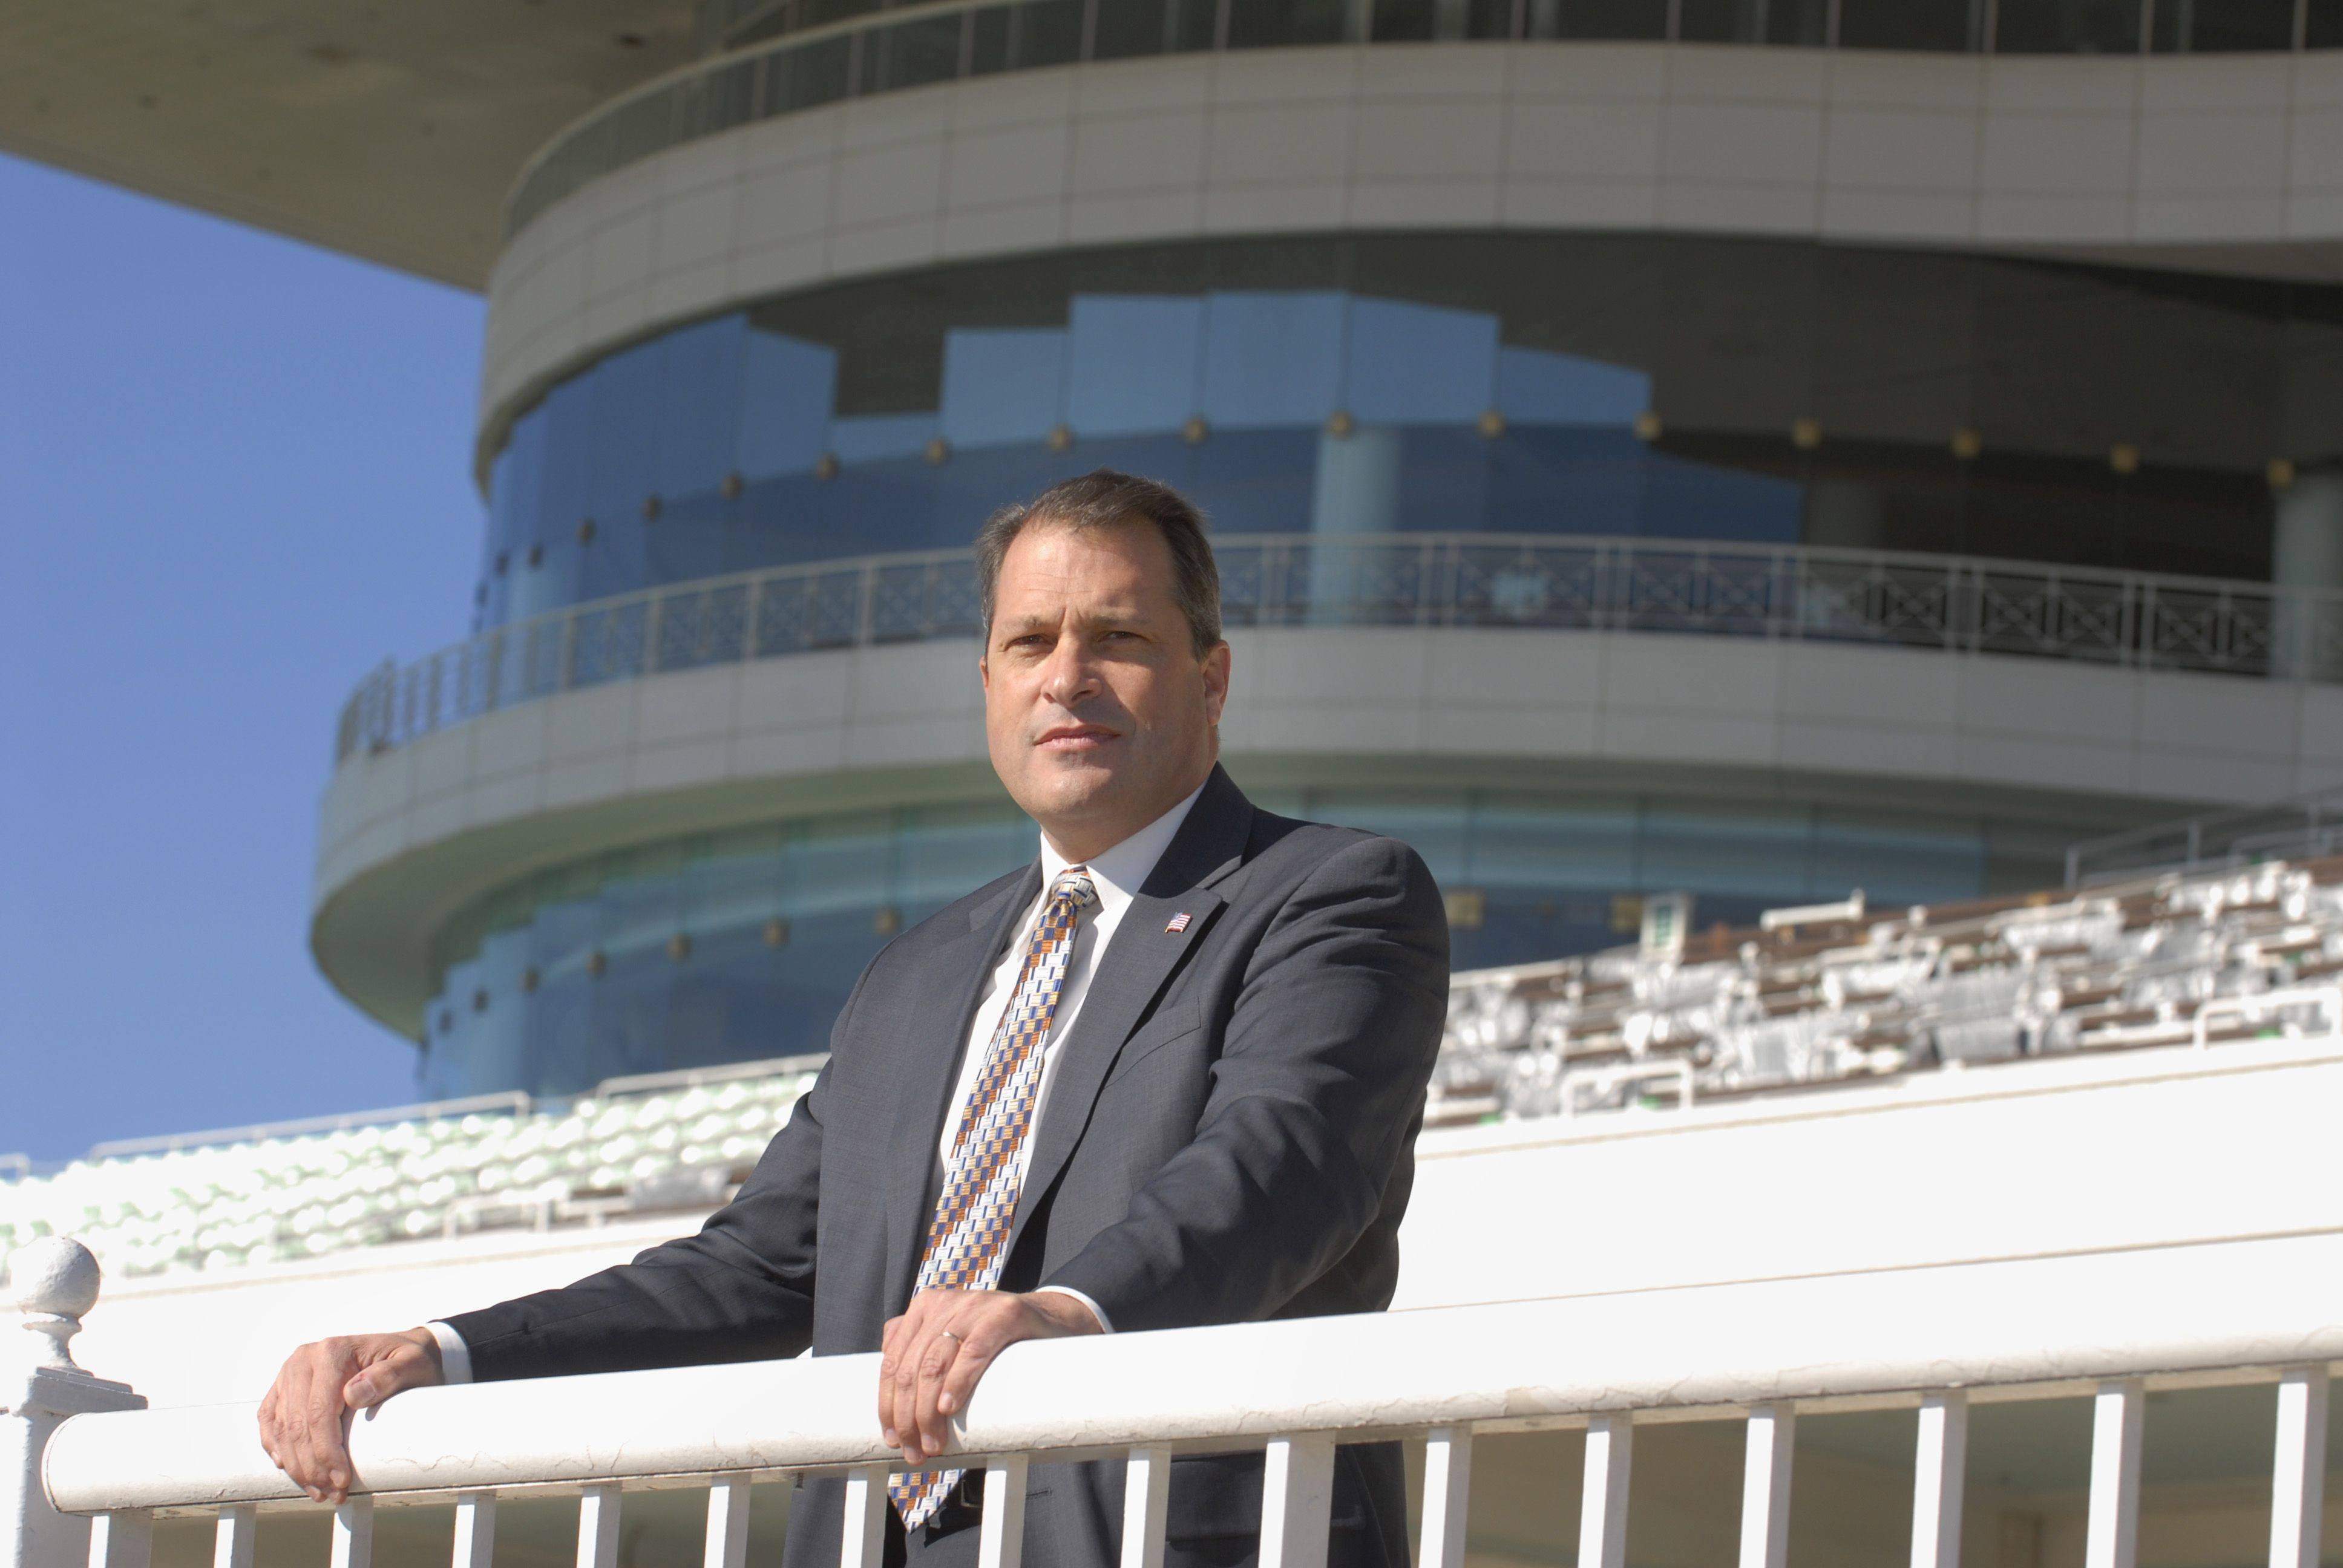 In his 17 years at the track, Tony Petrillo, the new general manager for Arlington Park, has walked every inch of the grounds many times over.